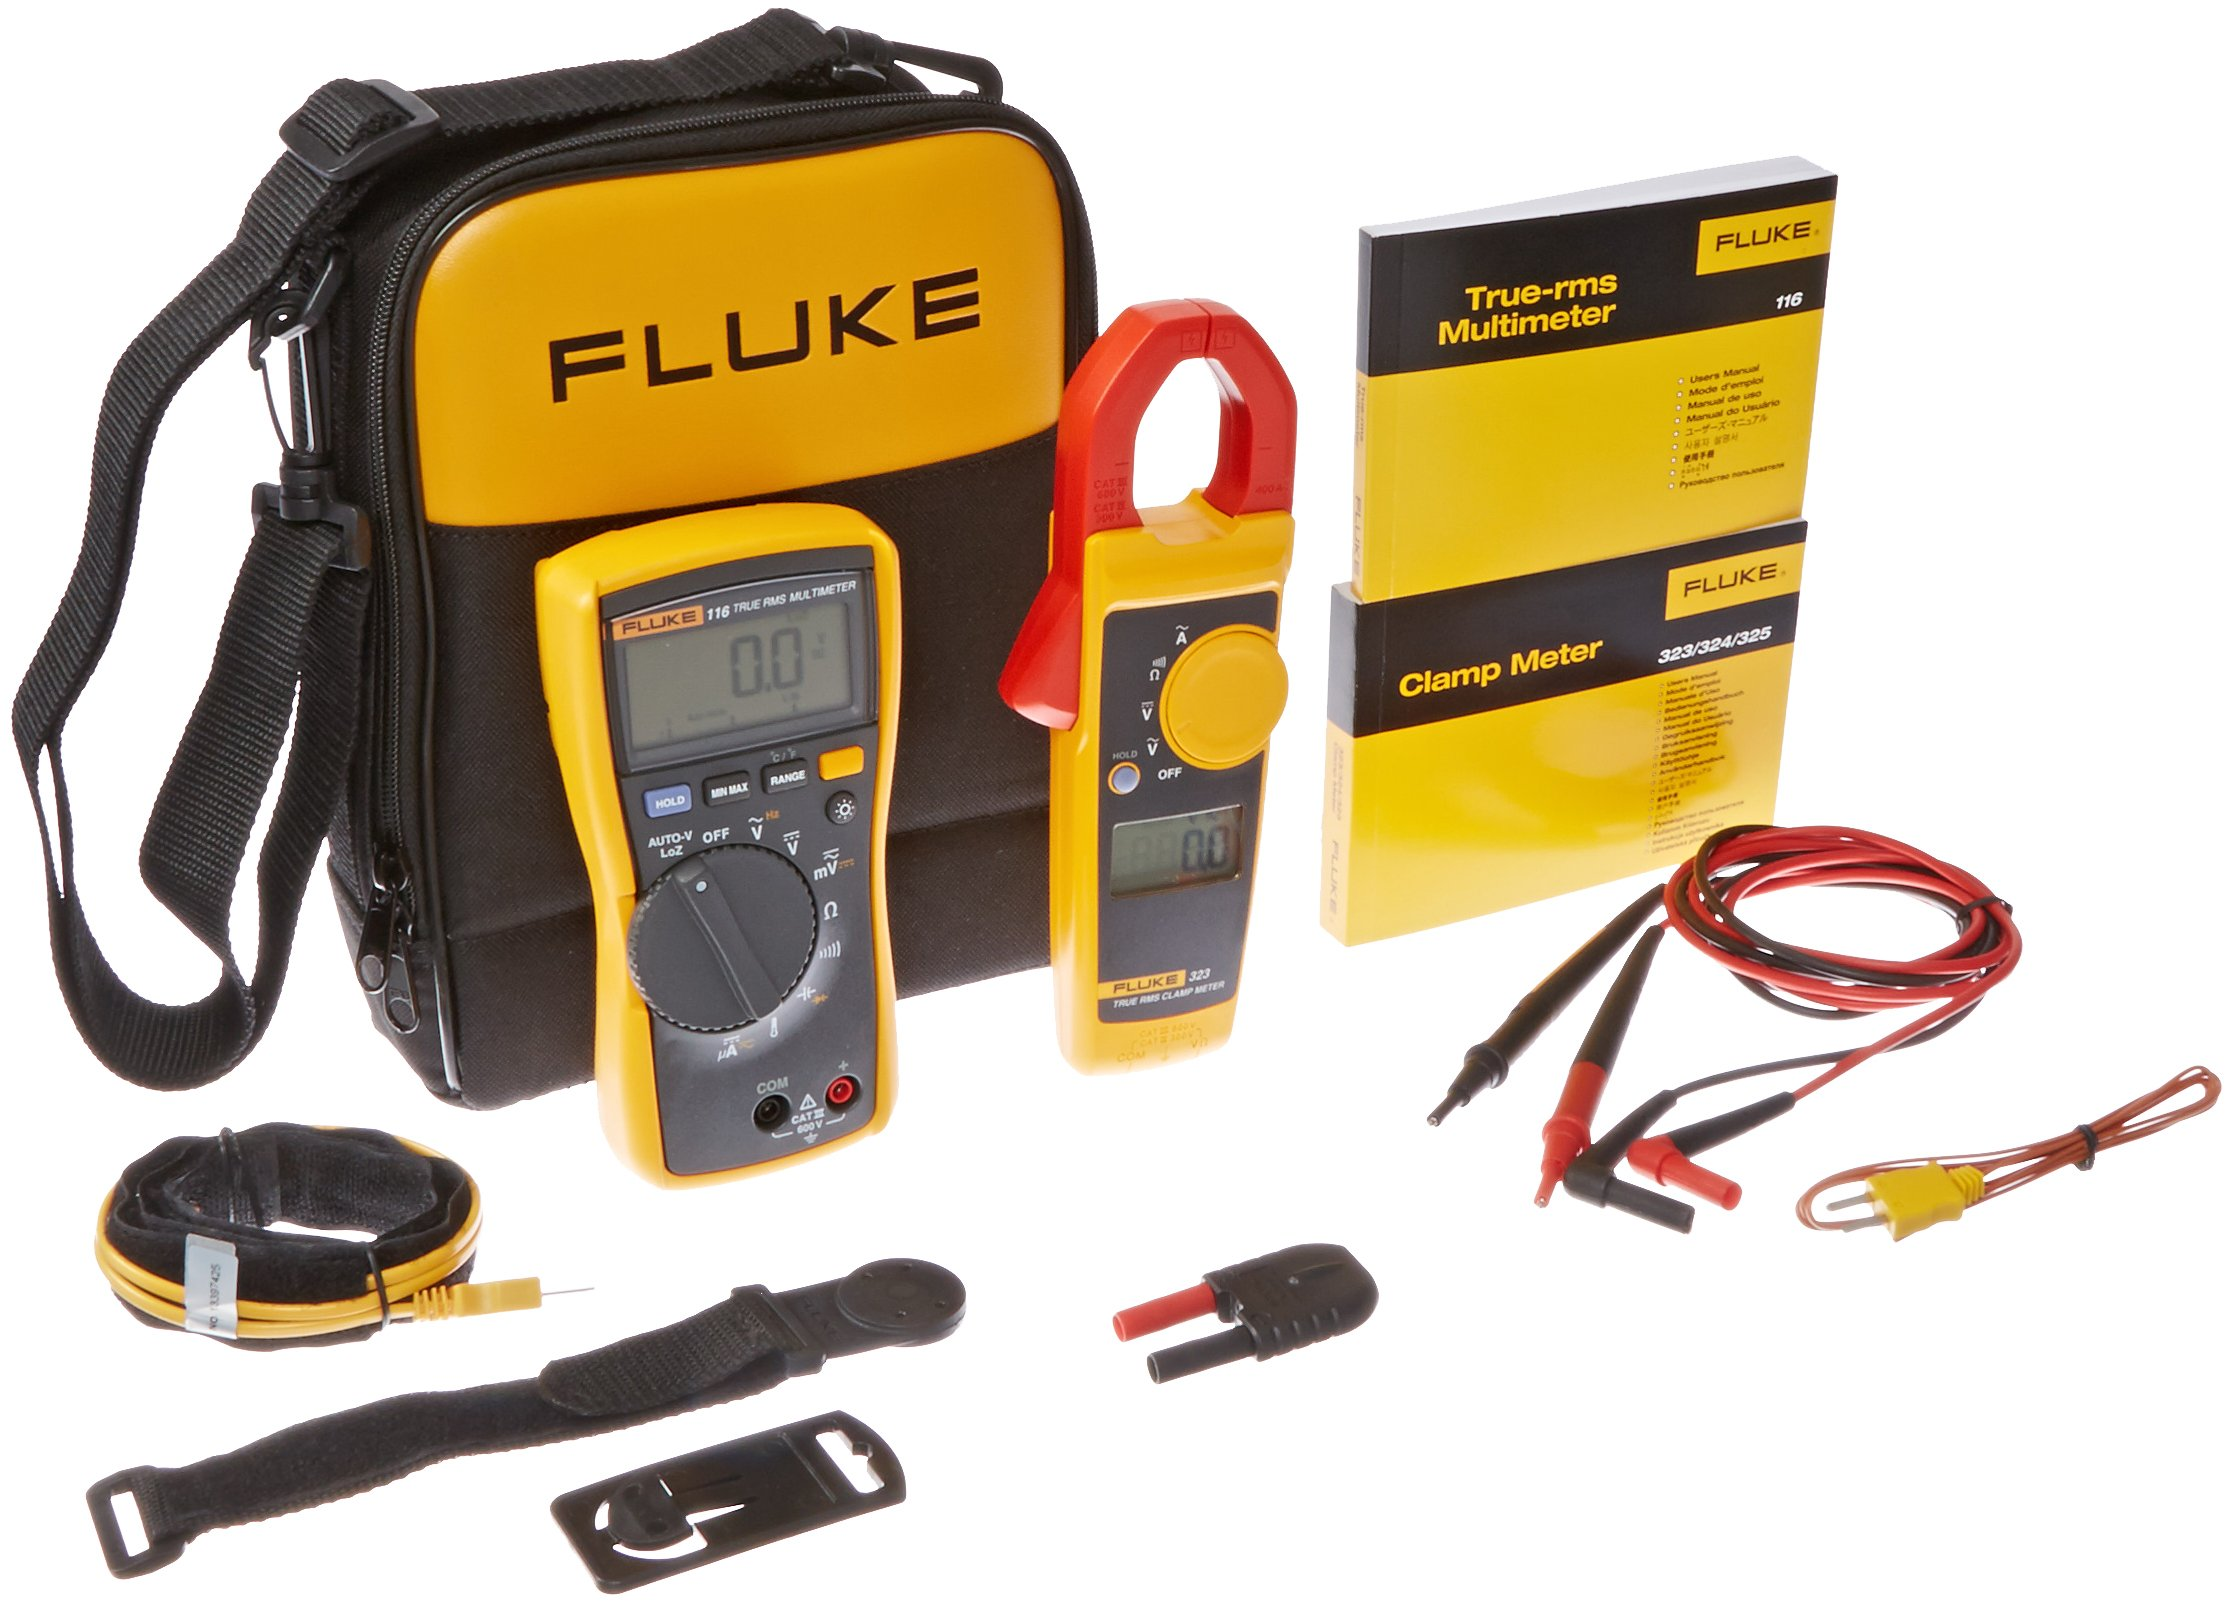 Fluke 323 Clamp Meter Fluke : Fluke kit hvac multimeter and clamp meter